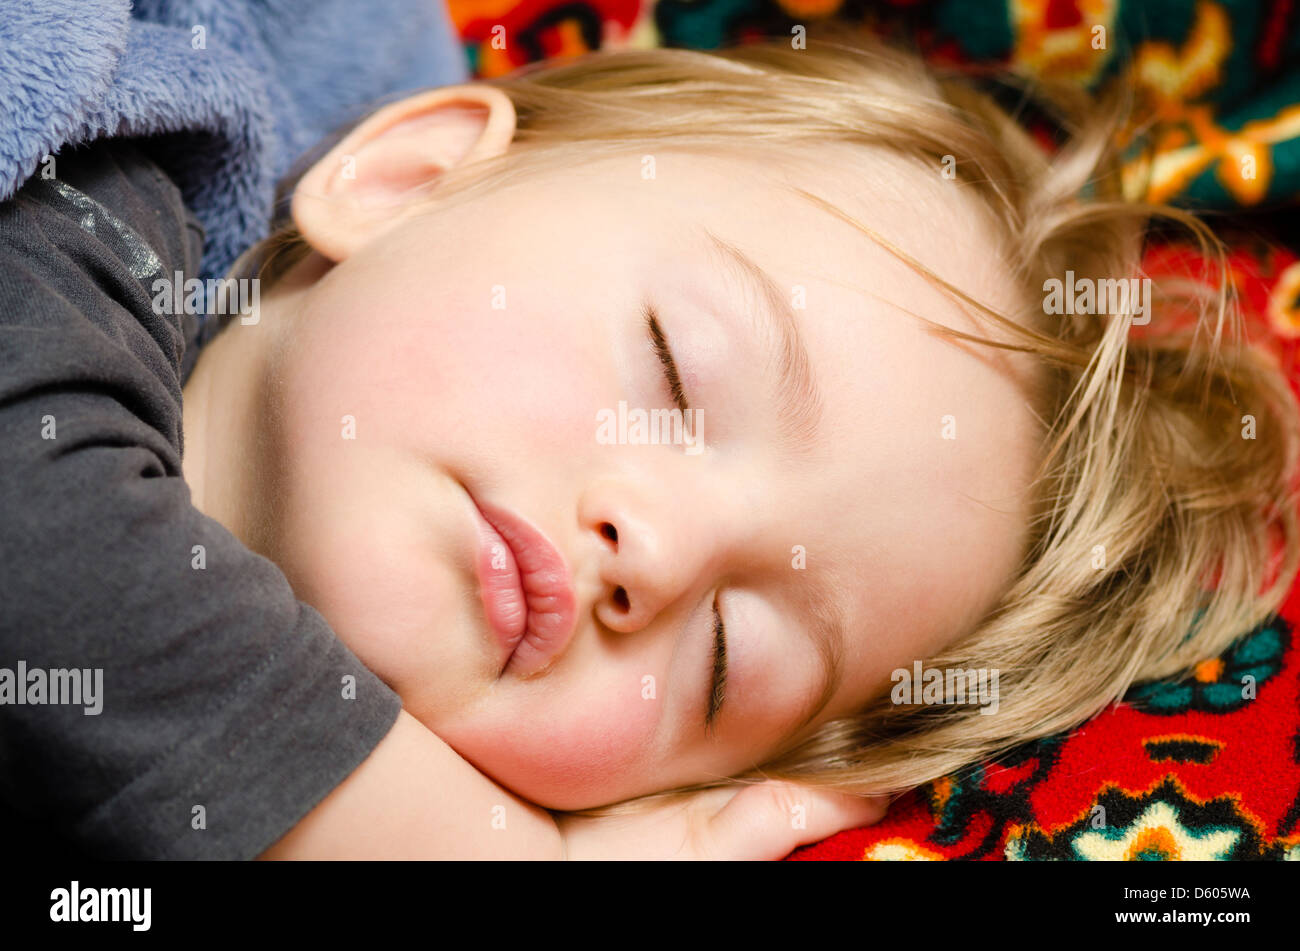 aa131d7702a6 Image Of Cute Baby Boy Sleeping